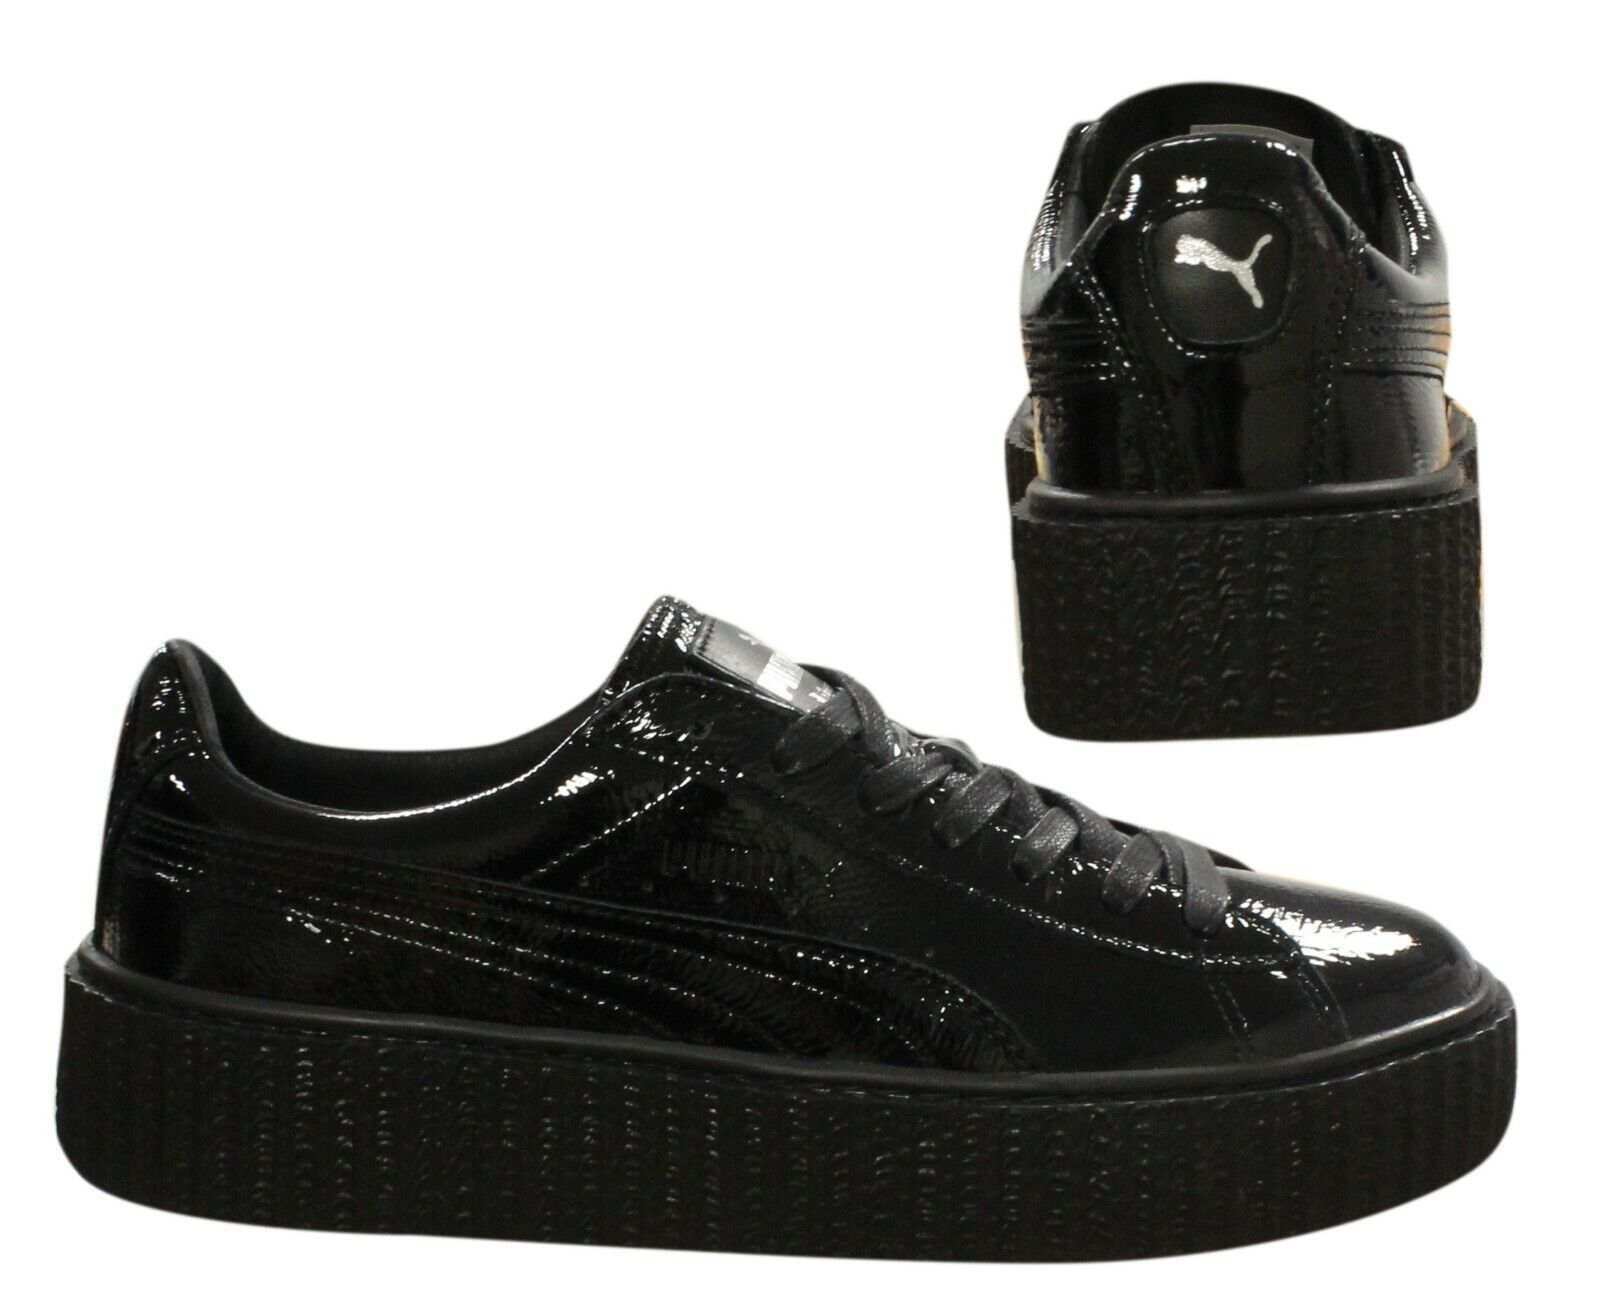 Details about Puma Fenty Rihanna Creeper Wrinkled Patent Womens Trainers Black 364465 01 B90D